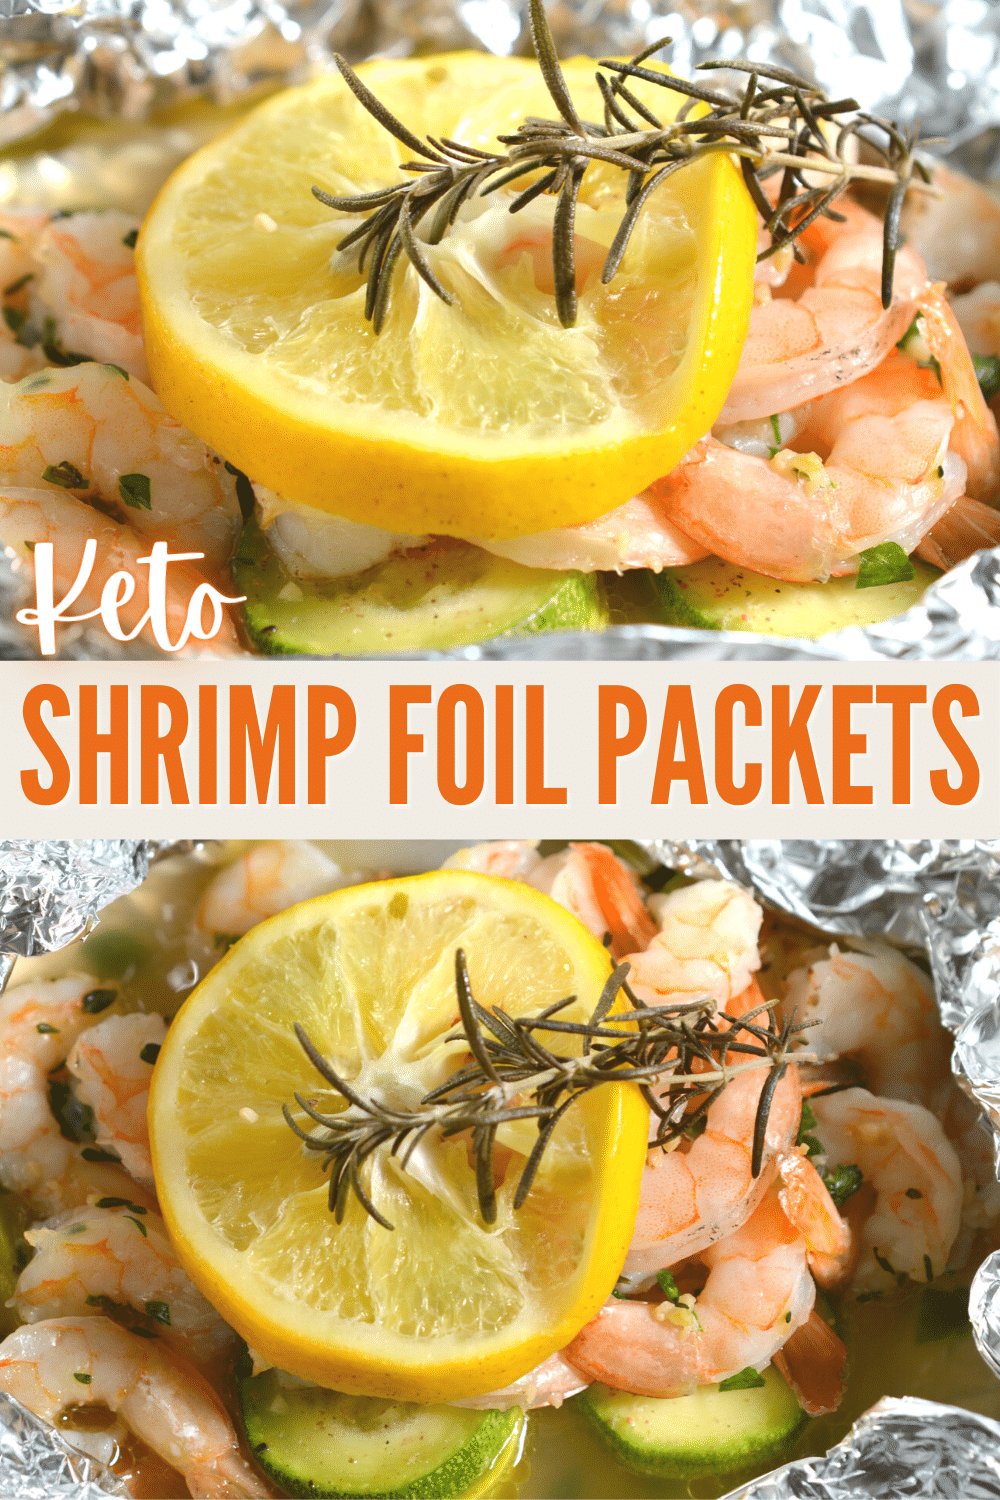 Keto Shrimp Foil Packets are a quick and easy way to get a healthy dinner on the table. This keto friendly meal is family friendly and mess free! #shrimp #foilpackets #keto via @wondermomwannab